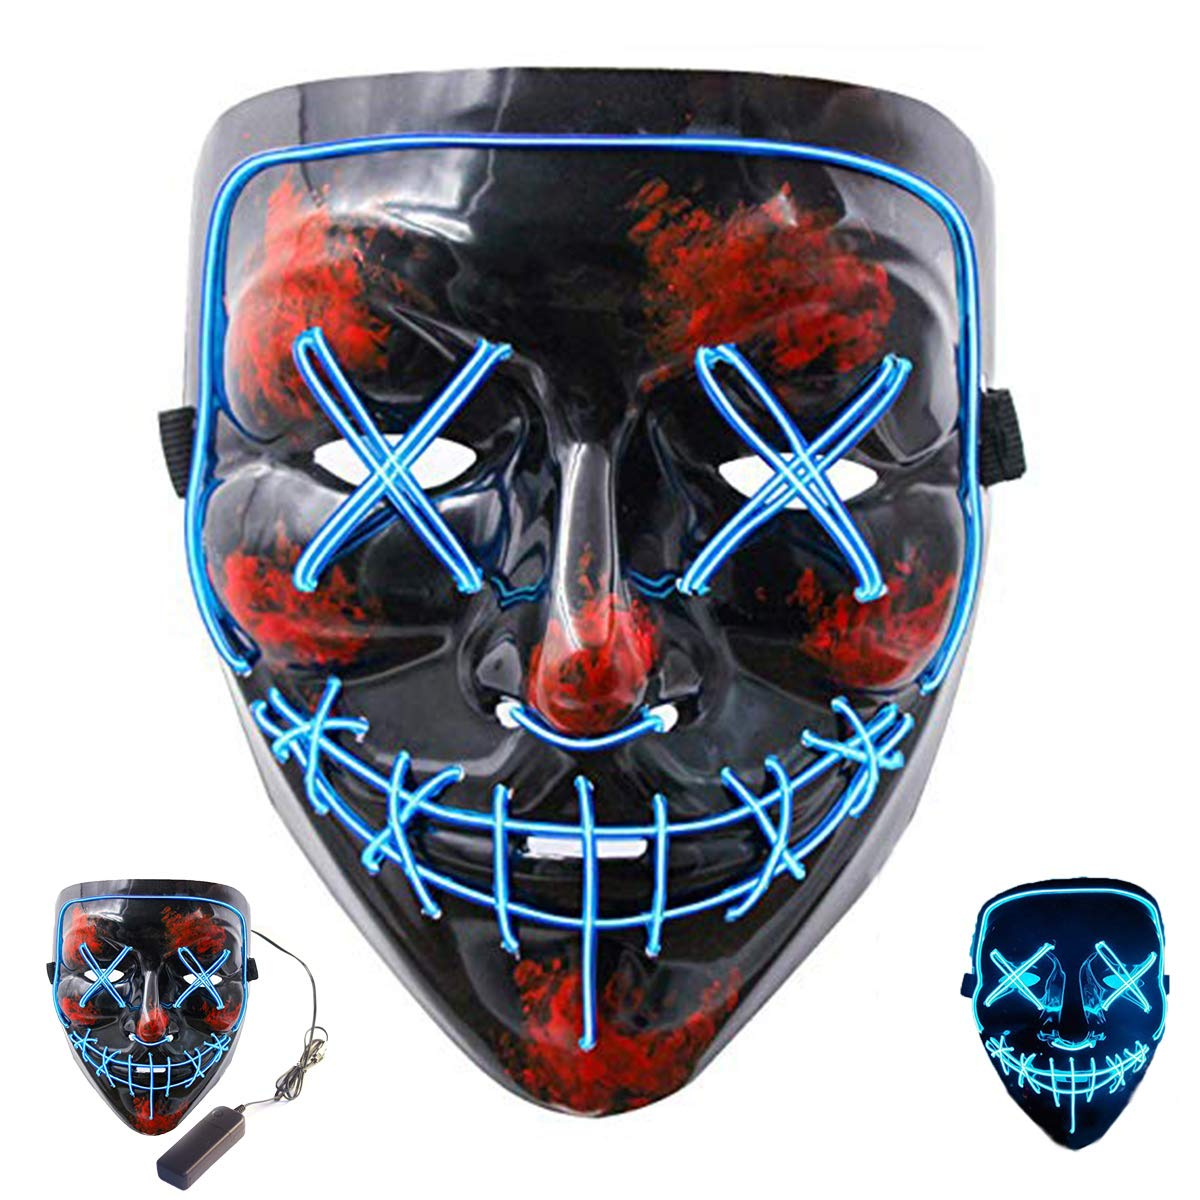 Halloween Scary Mask Led Cosplay Costume Mask EL Wire Light up Mask for Halloween Festival Parties